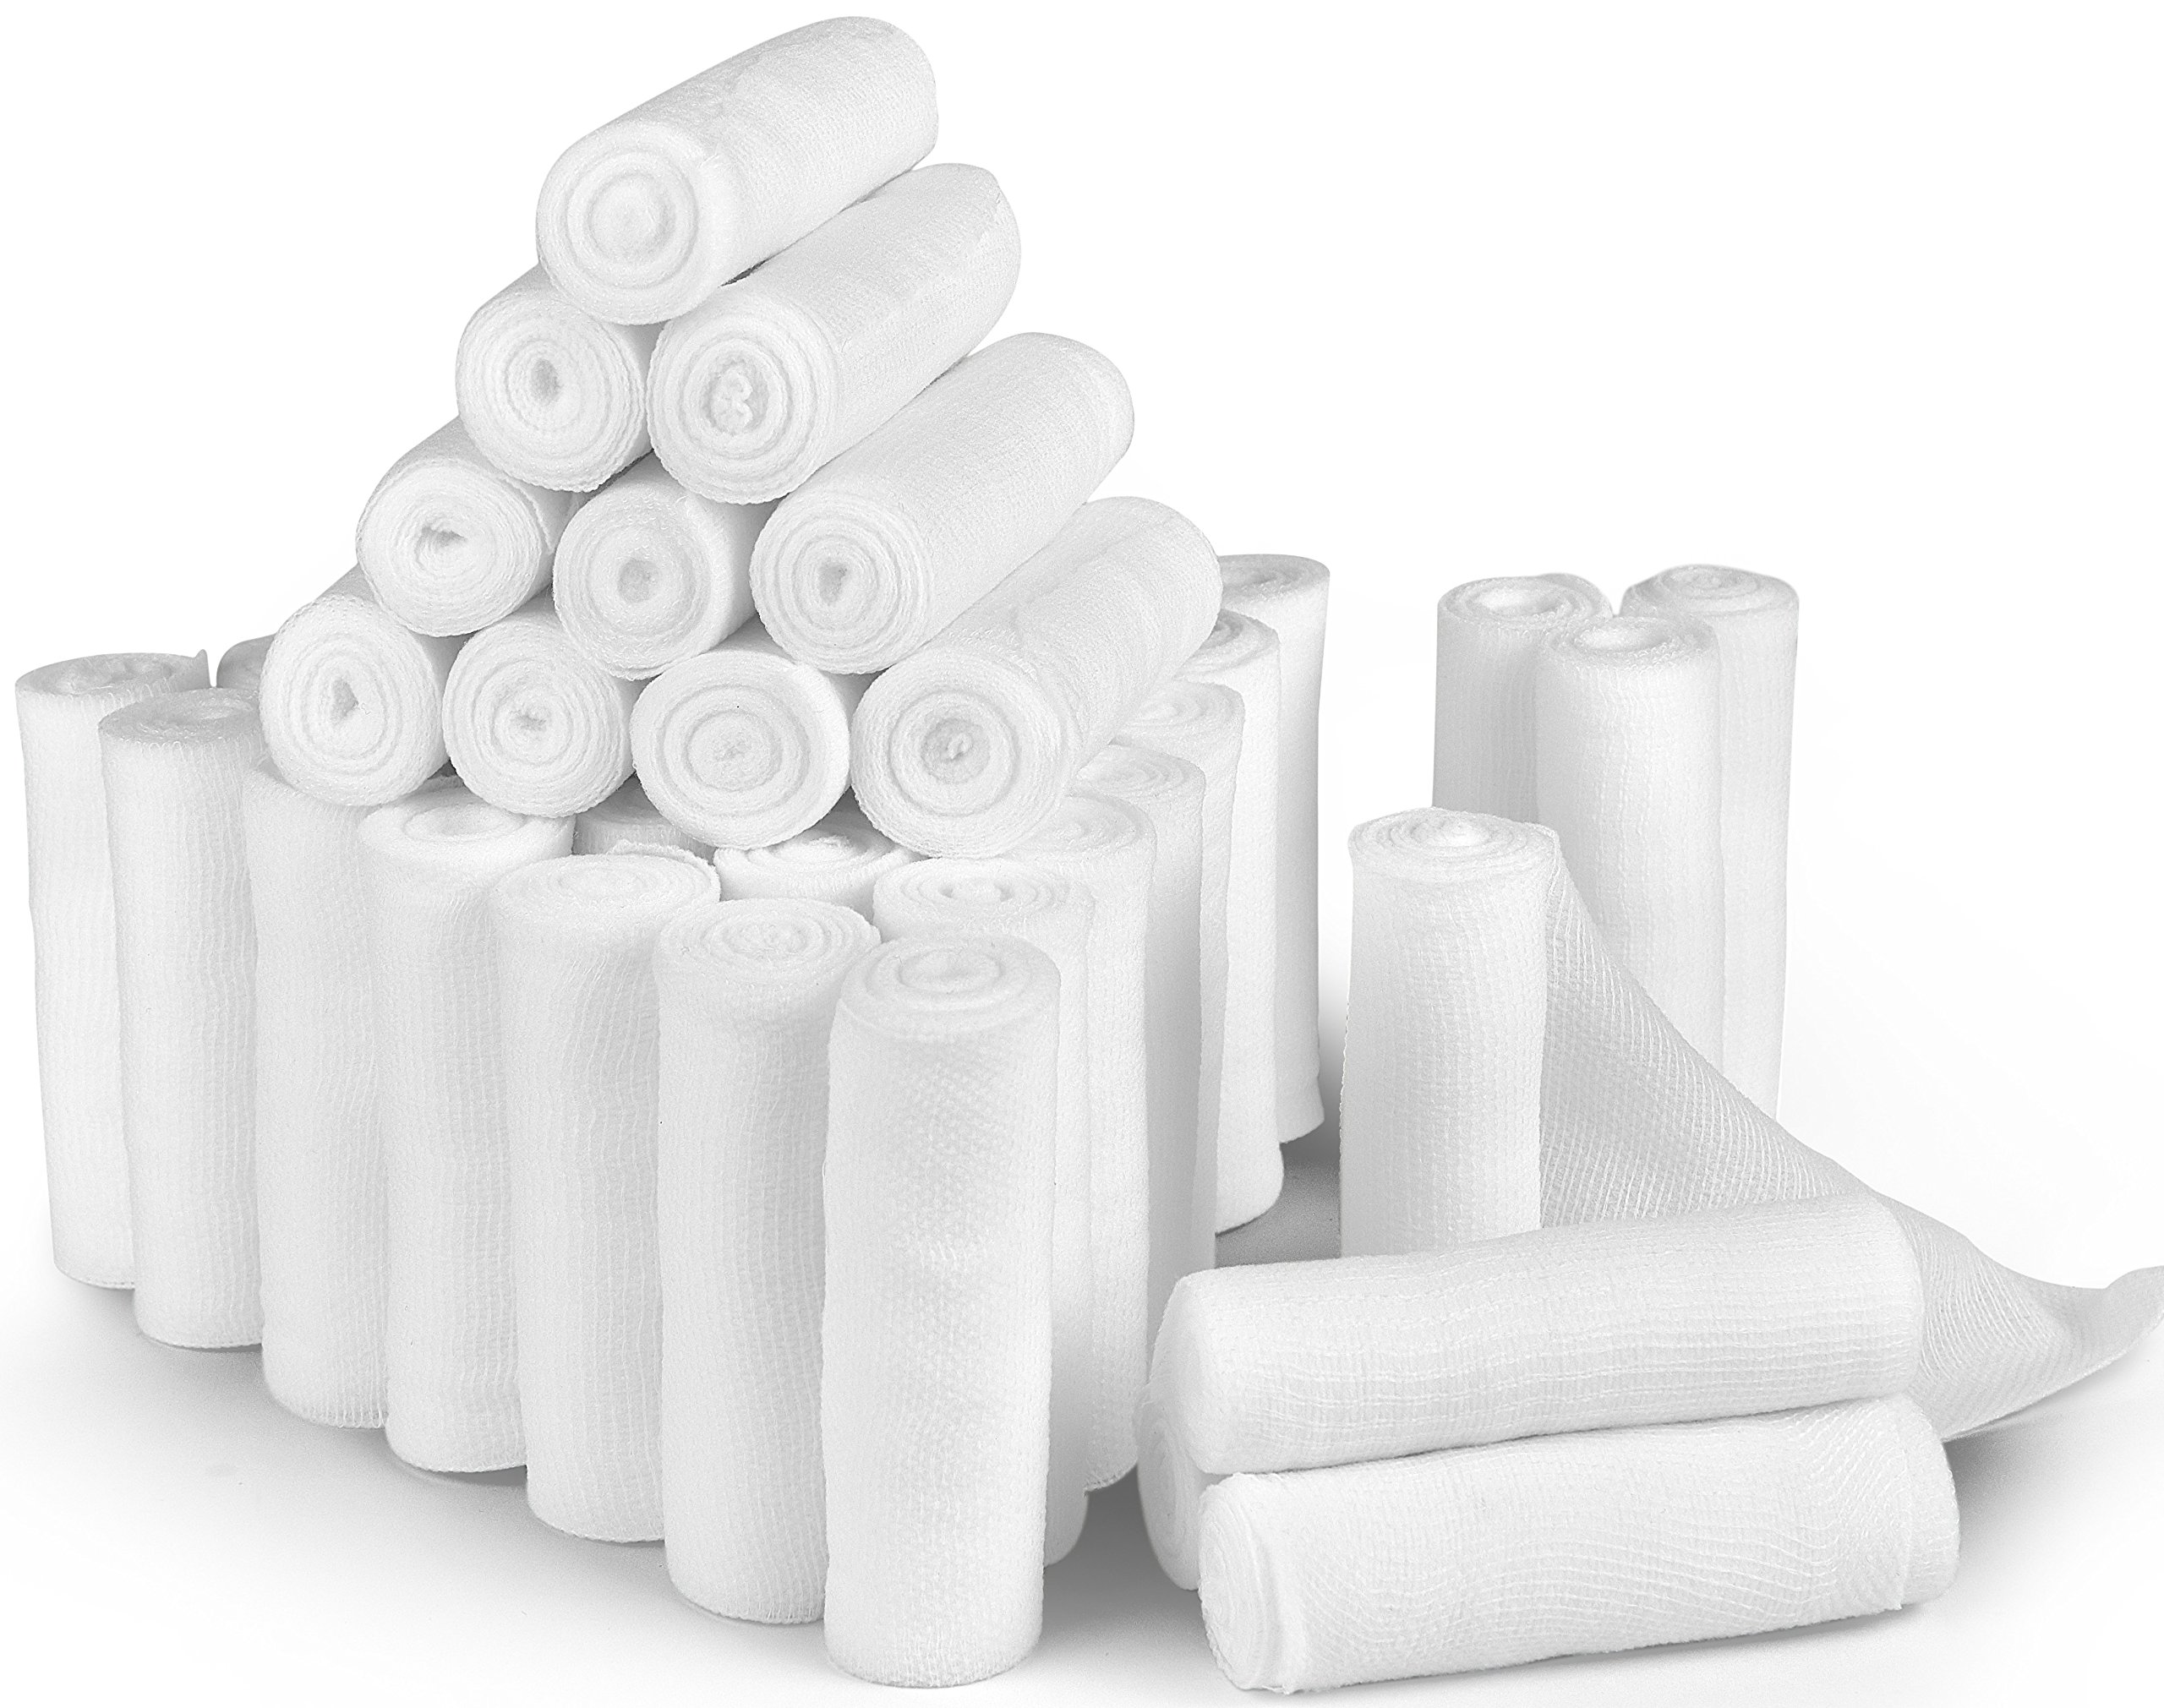 D&H Medical 24 Bulk Pack Gauze Stretch Bandage Roll, 4 Inch X 4 Yards FDA Approved, Used for Wound Care, Easy To Use Cotton Ply Rolled Hand Wrap Dressing Ankles & Knees. Add To First Aid Supplies. by D and H Medical